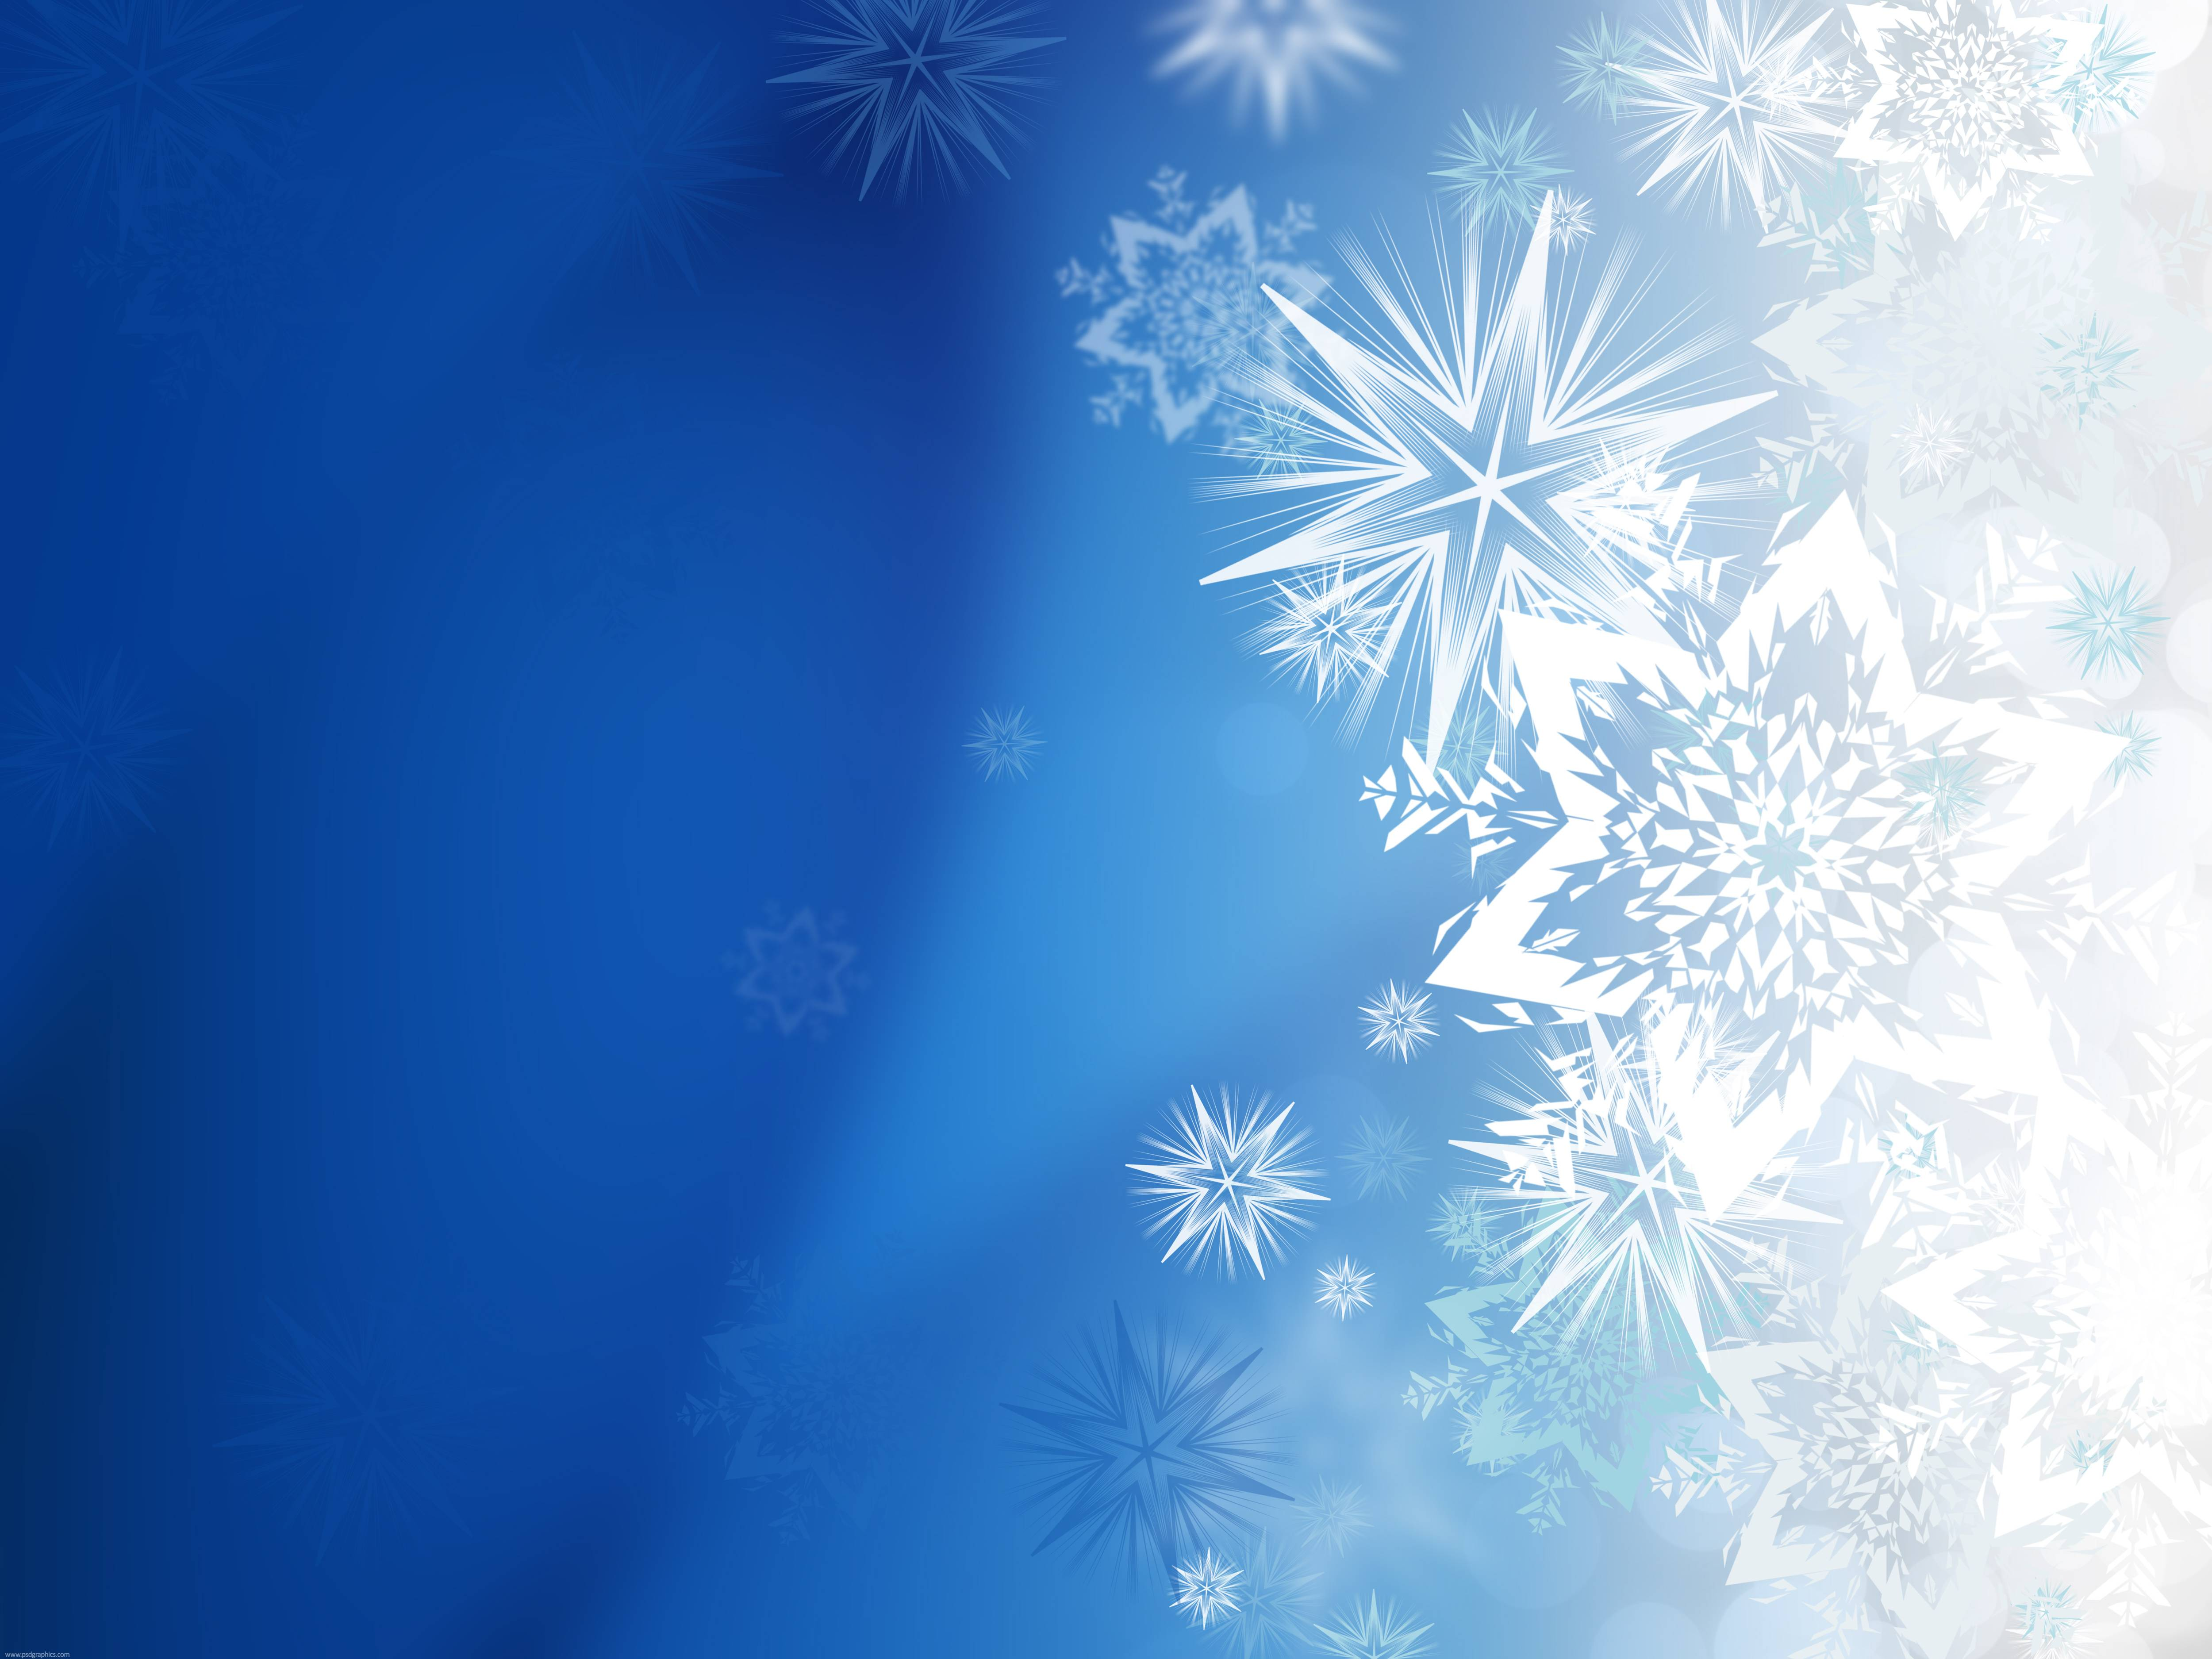 Winter Image Backgrounds 5000x3750